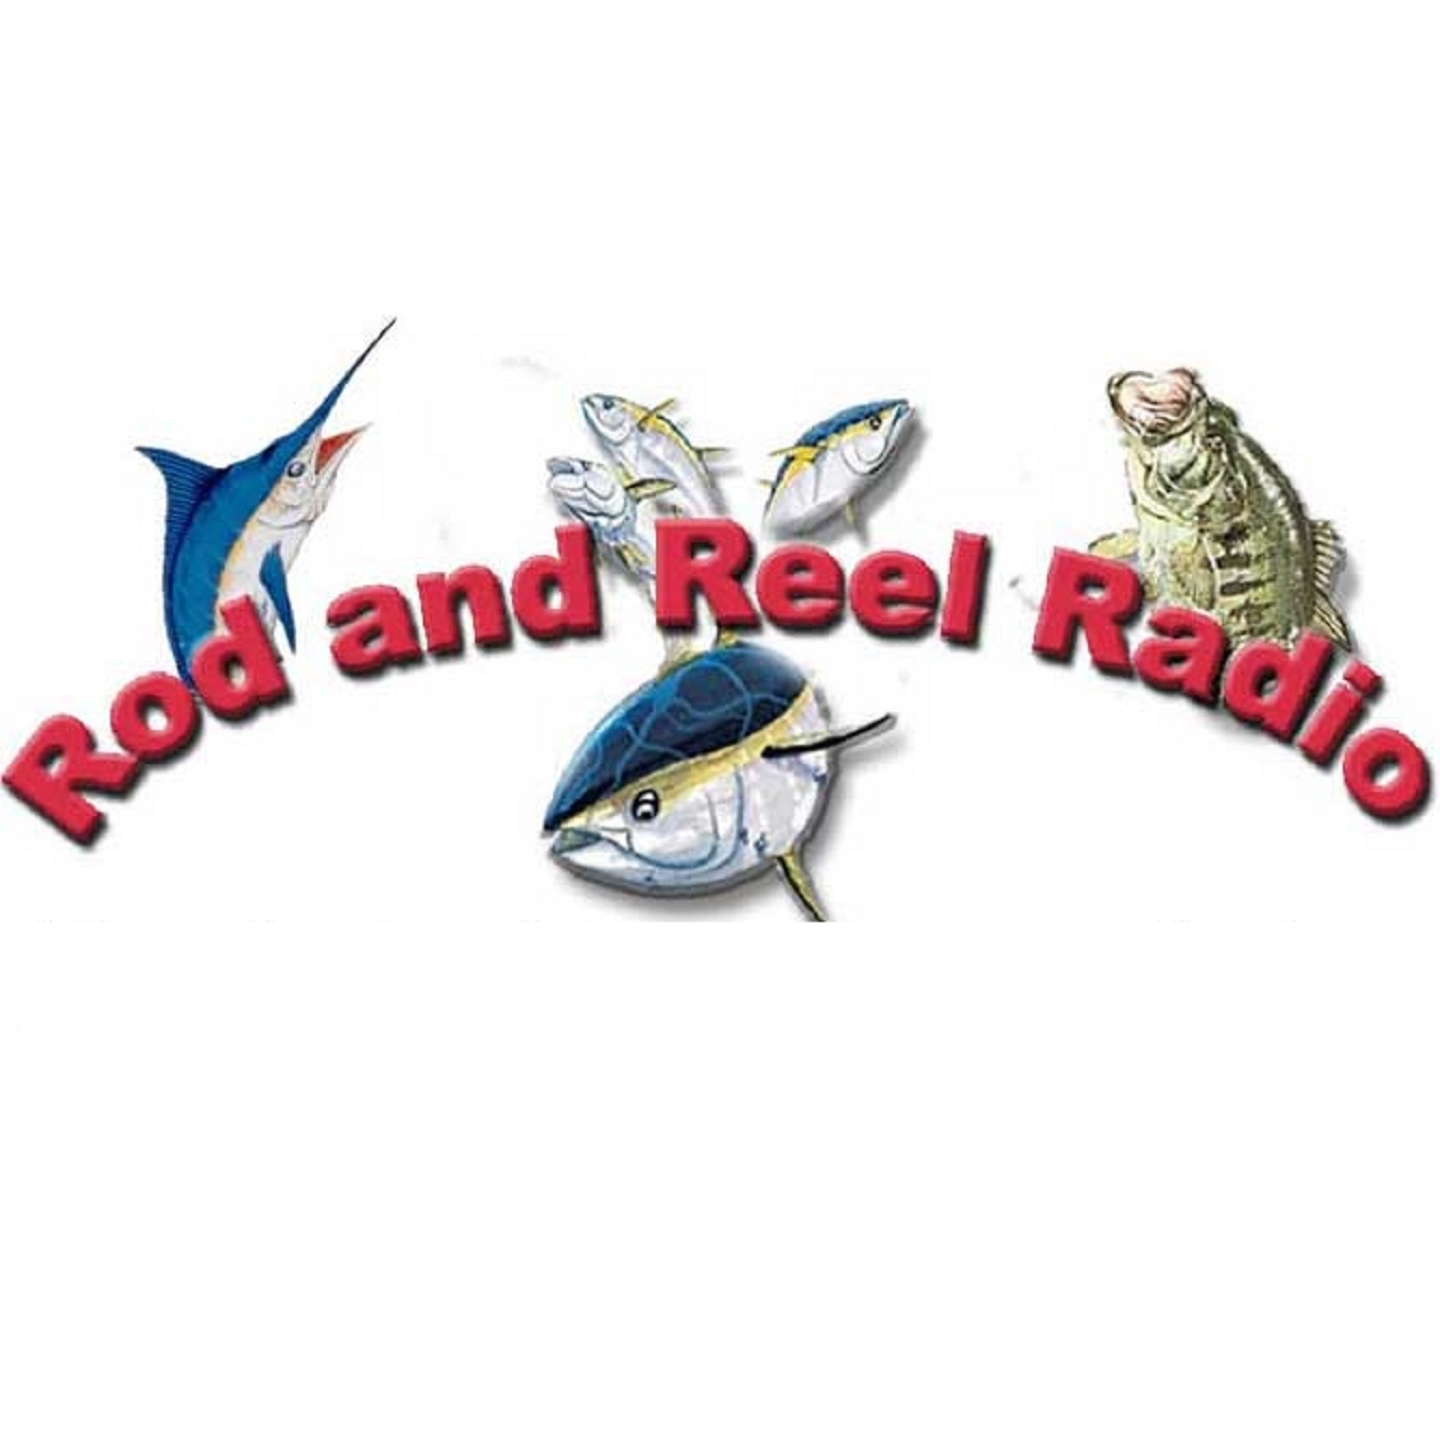 Rod and Reel Radio